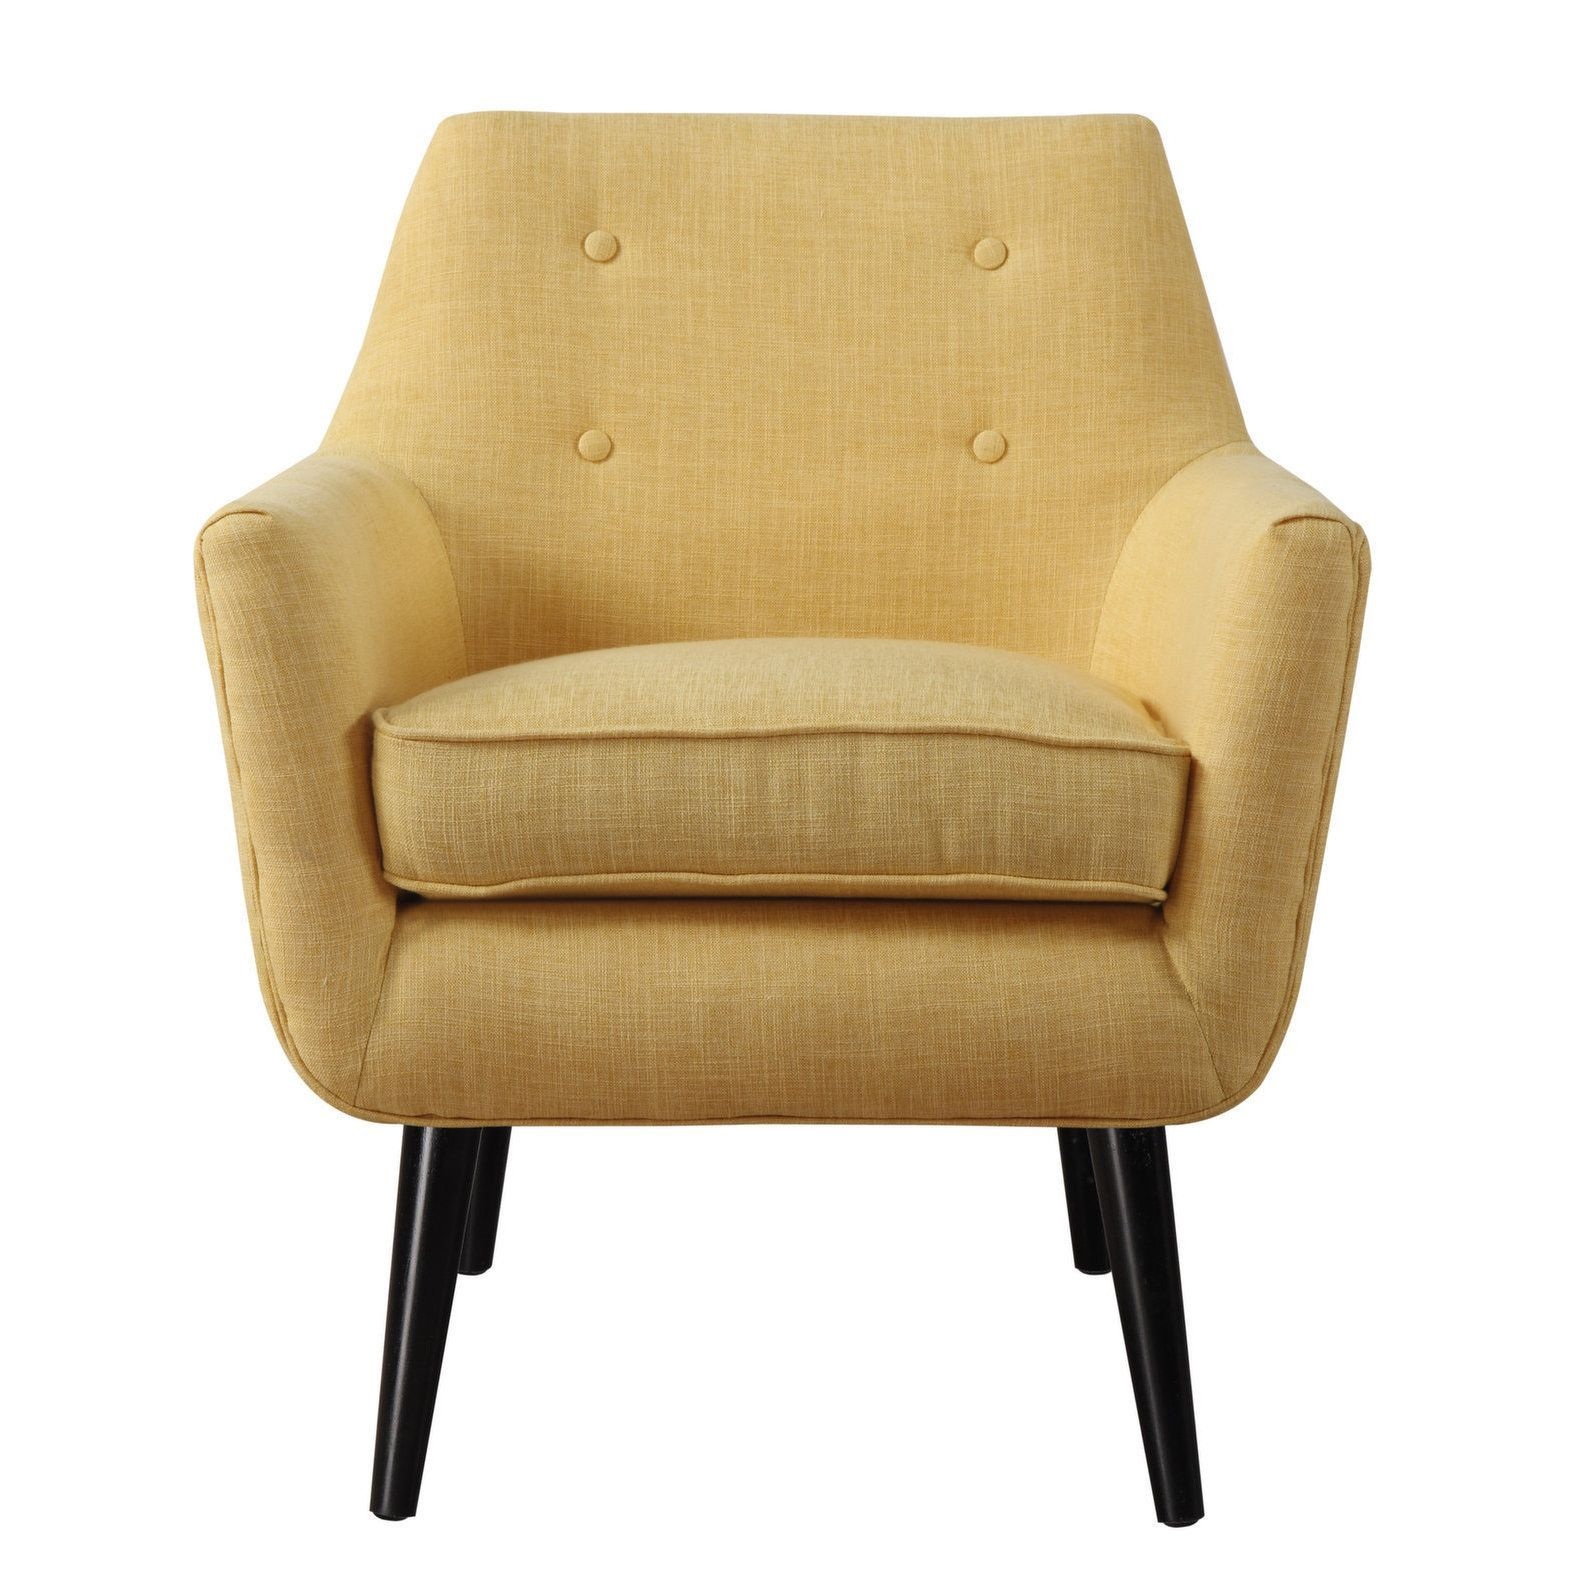 hand-crafted mustard yellow linen chair with button tufting | mid